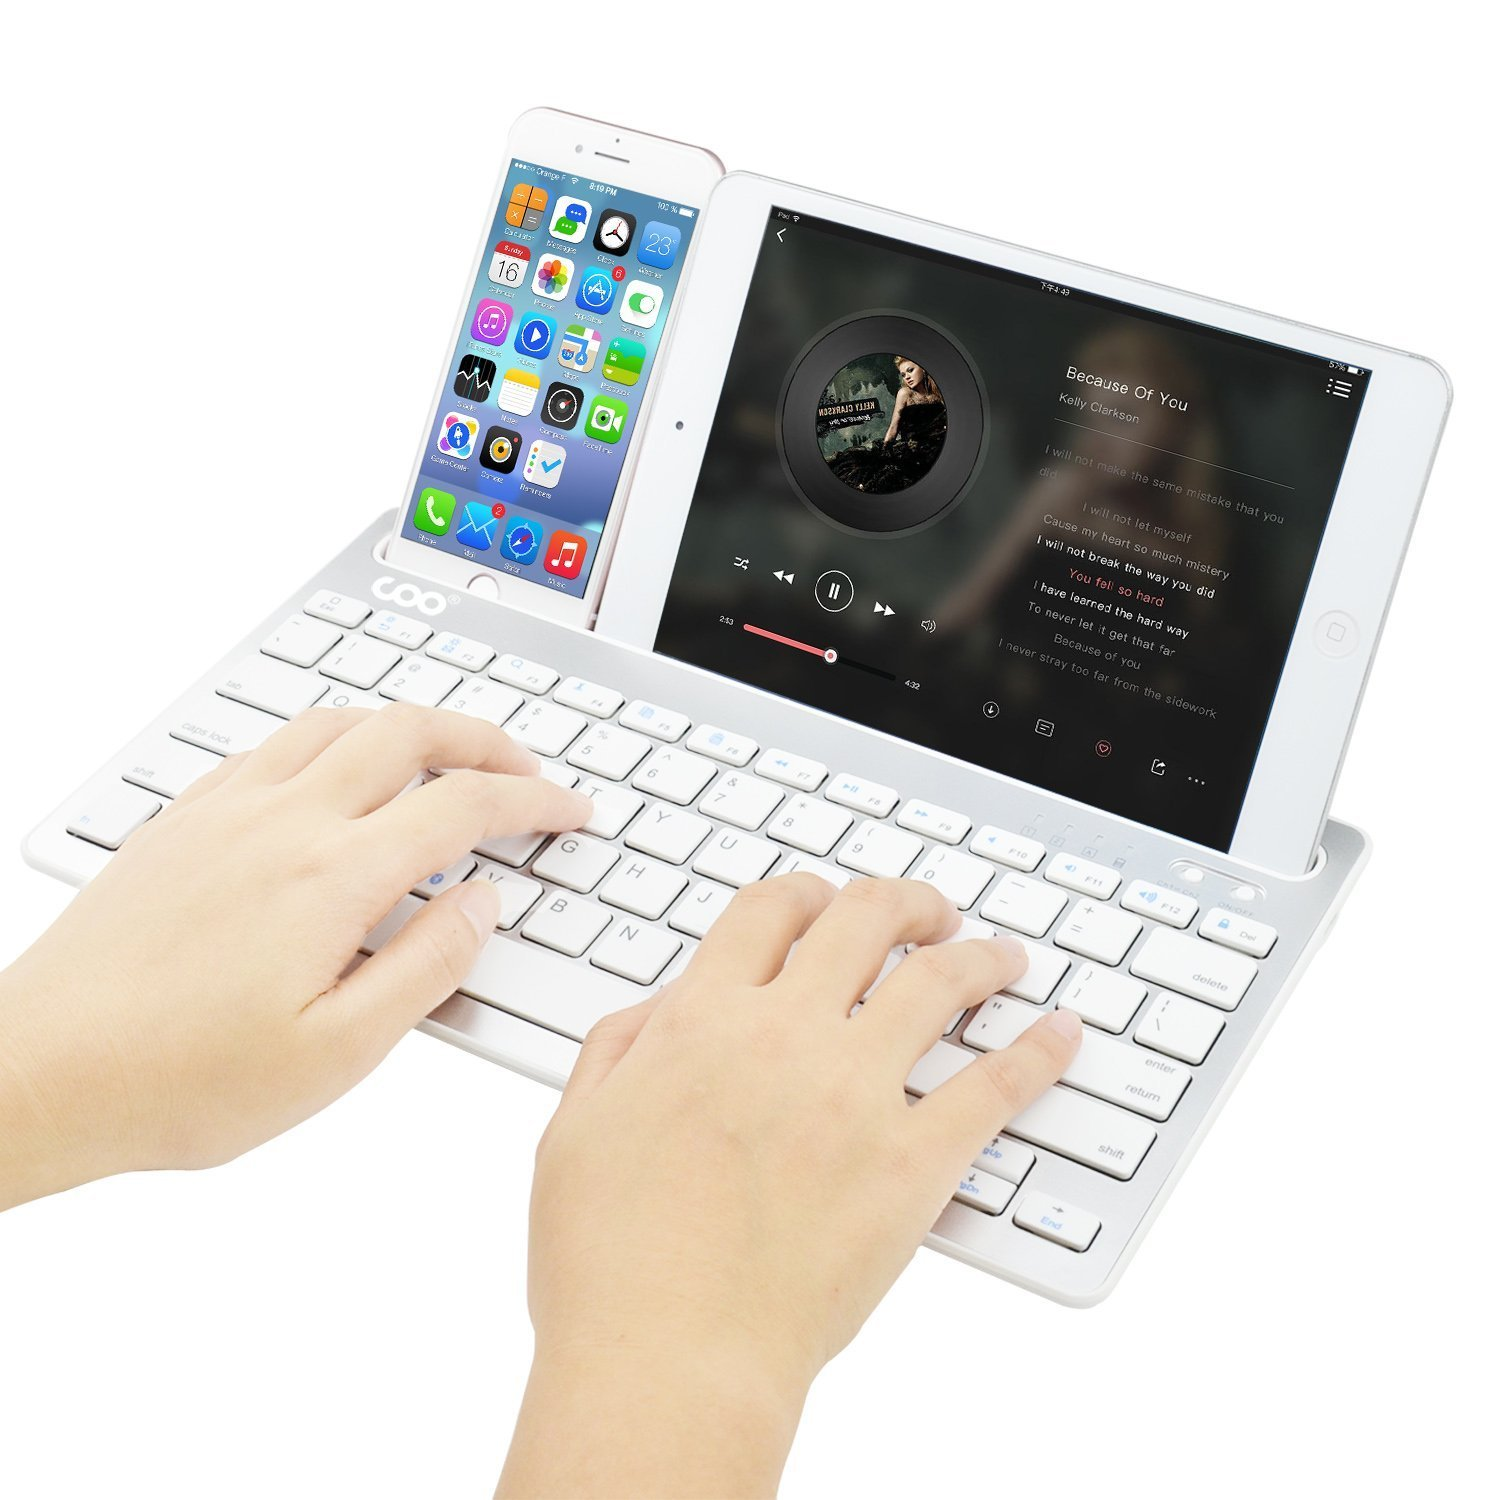 Bluetooth keyboard, Dual Channel Multi-device Universal Wireless Bluetooth Rechargeable Keyboard with Sturdy Stand for Tablet Smartphone PC Windows Android iOS Mac(Silver) by COO (Image #3)